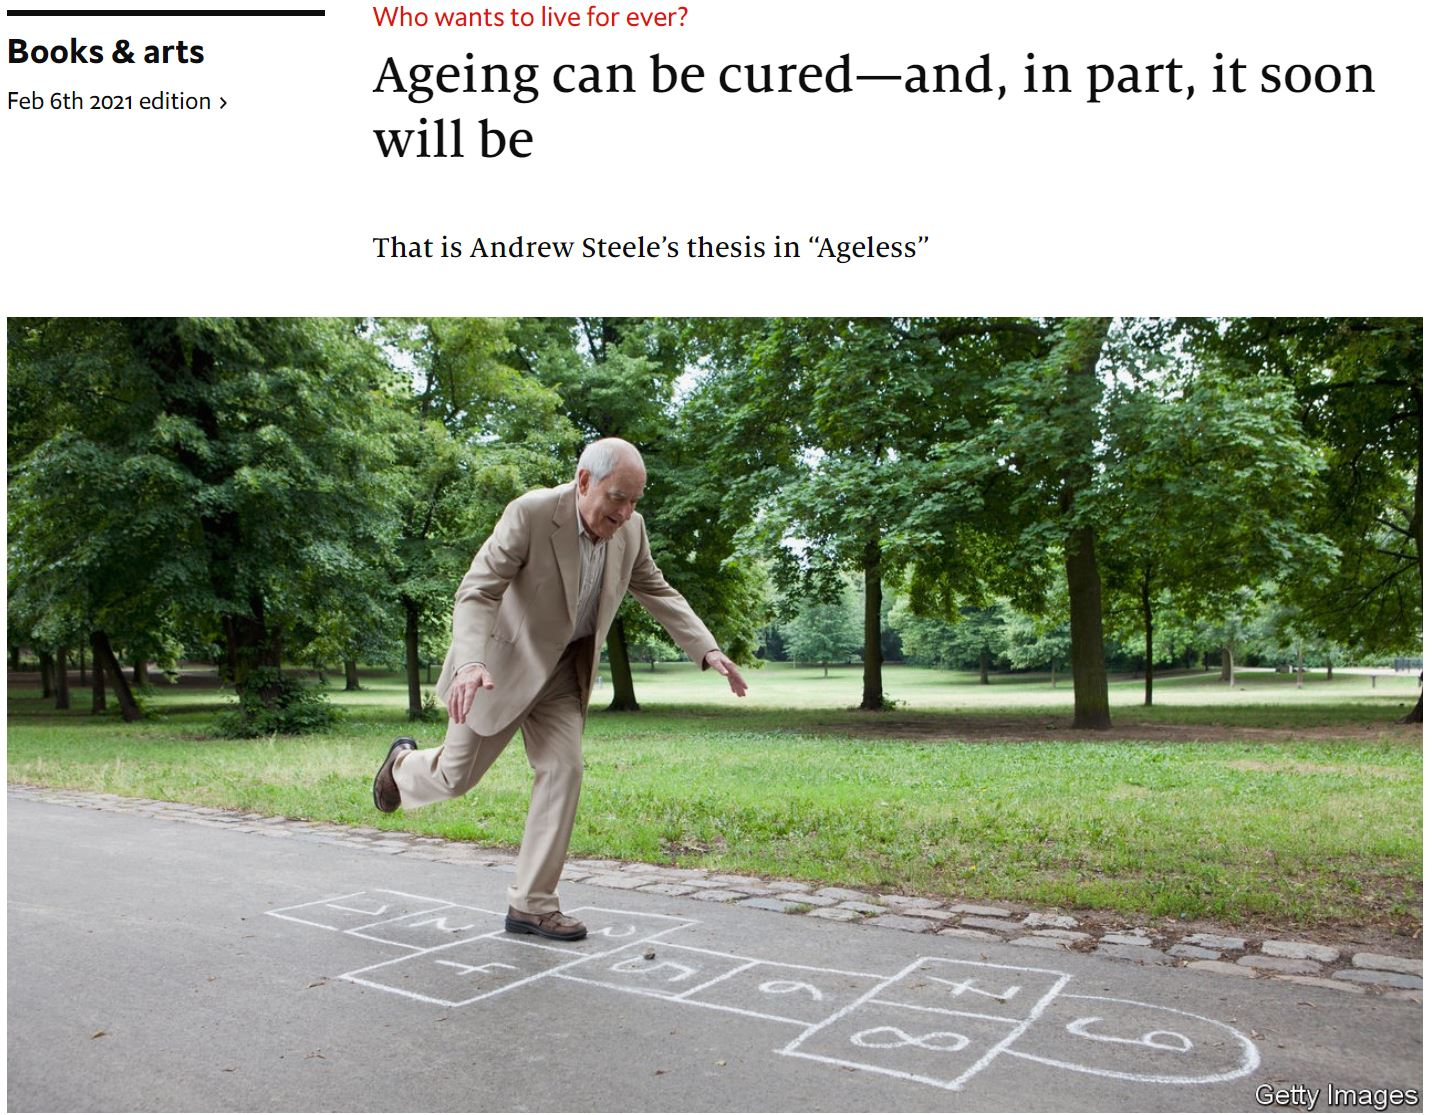 economist_2021-02-08_Ageing can be cured—and, in part, it soon will be